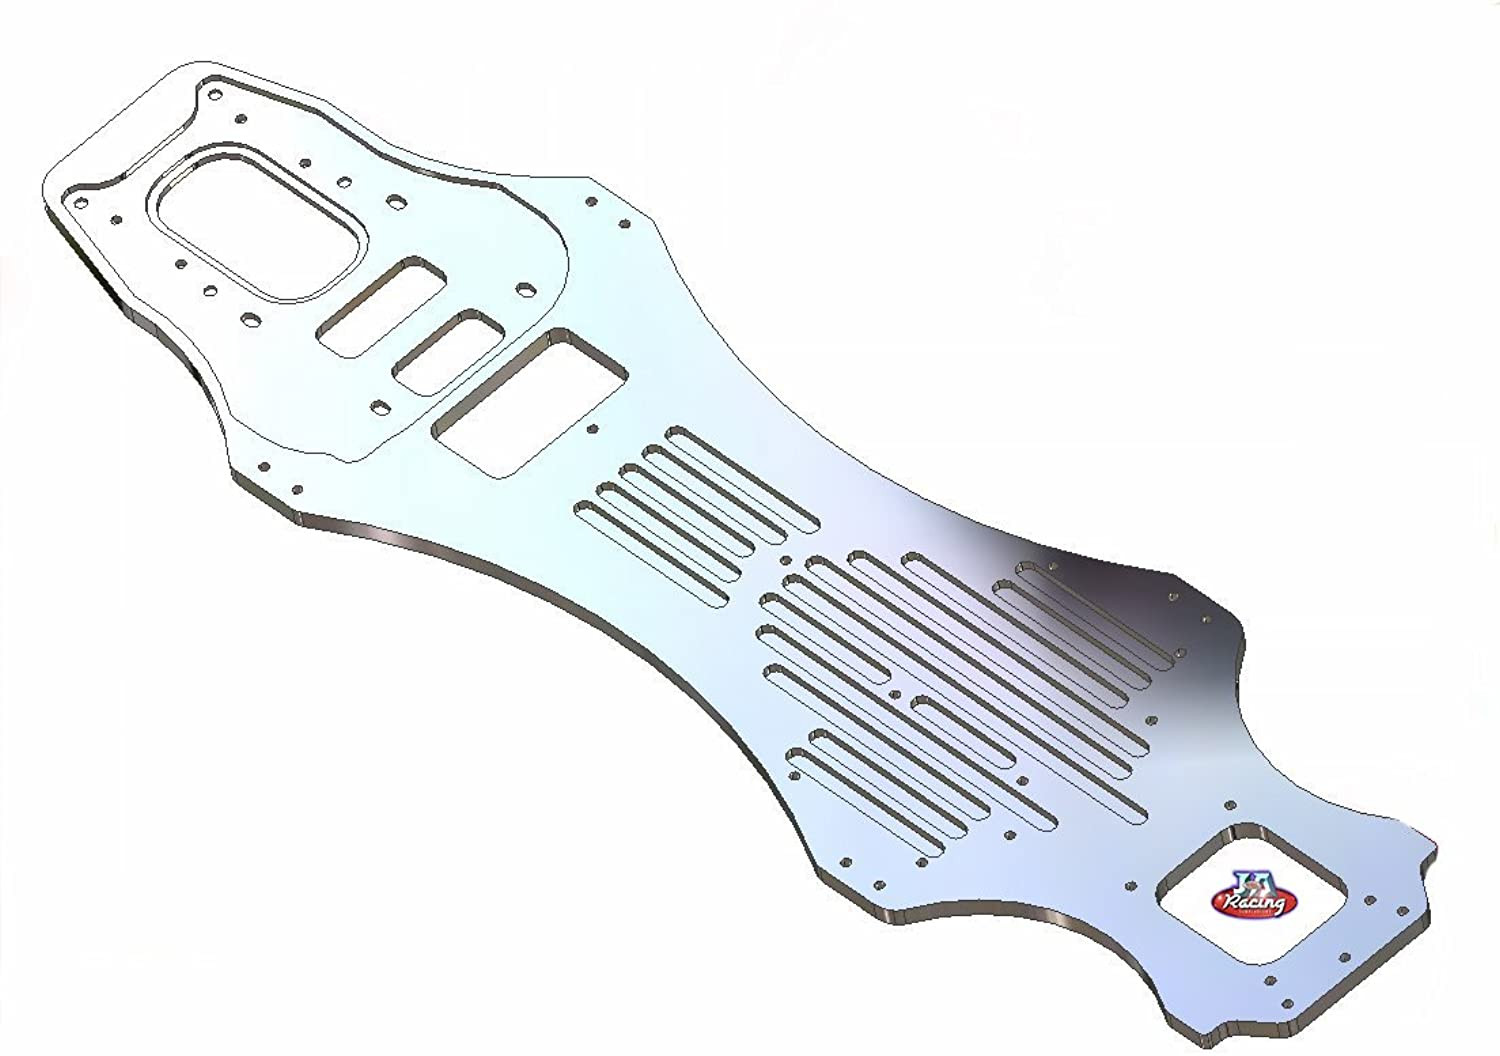 J&A Racing 1 5th scale T3 long wheelbase chassis 535mm